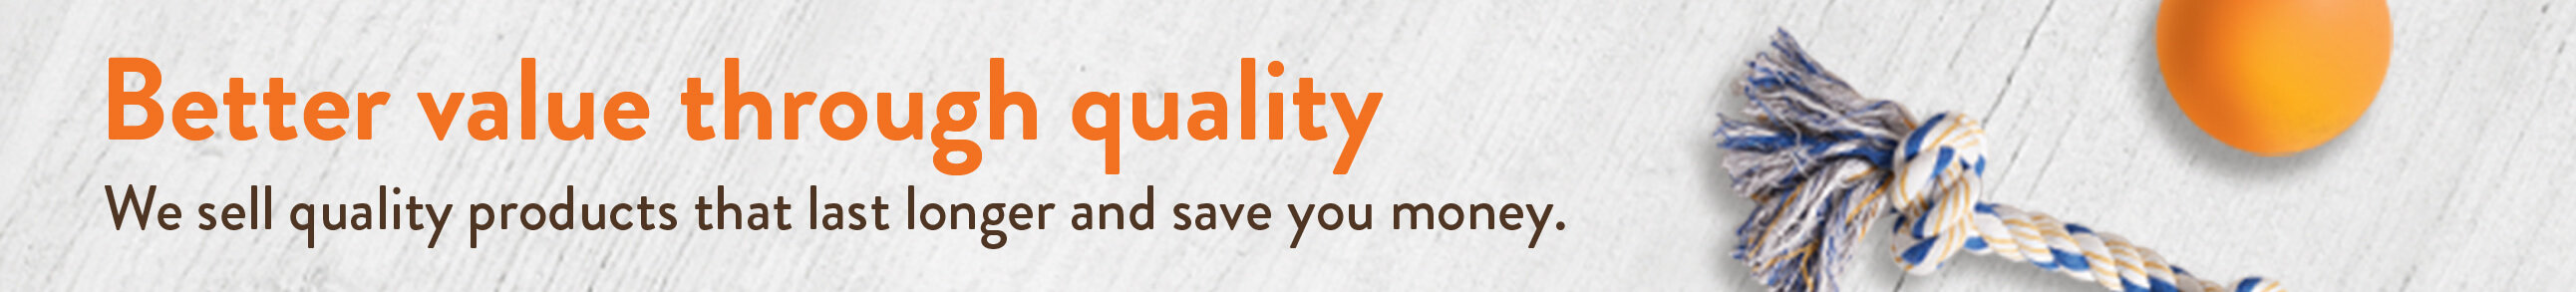 Better value through quality. We sell quality products that last longer and save money